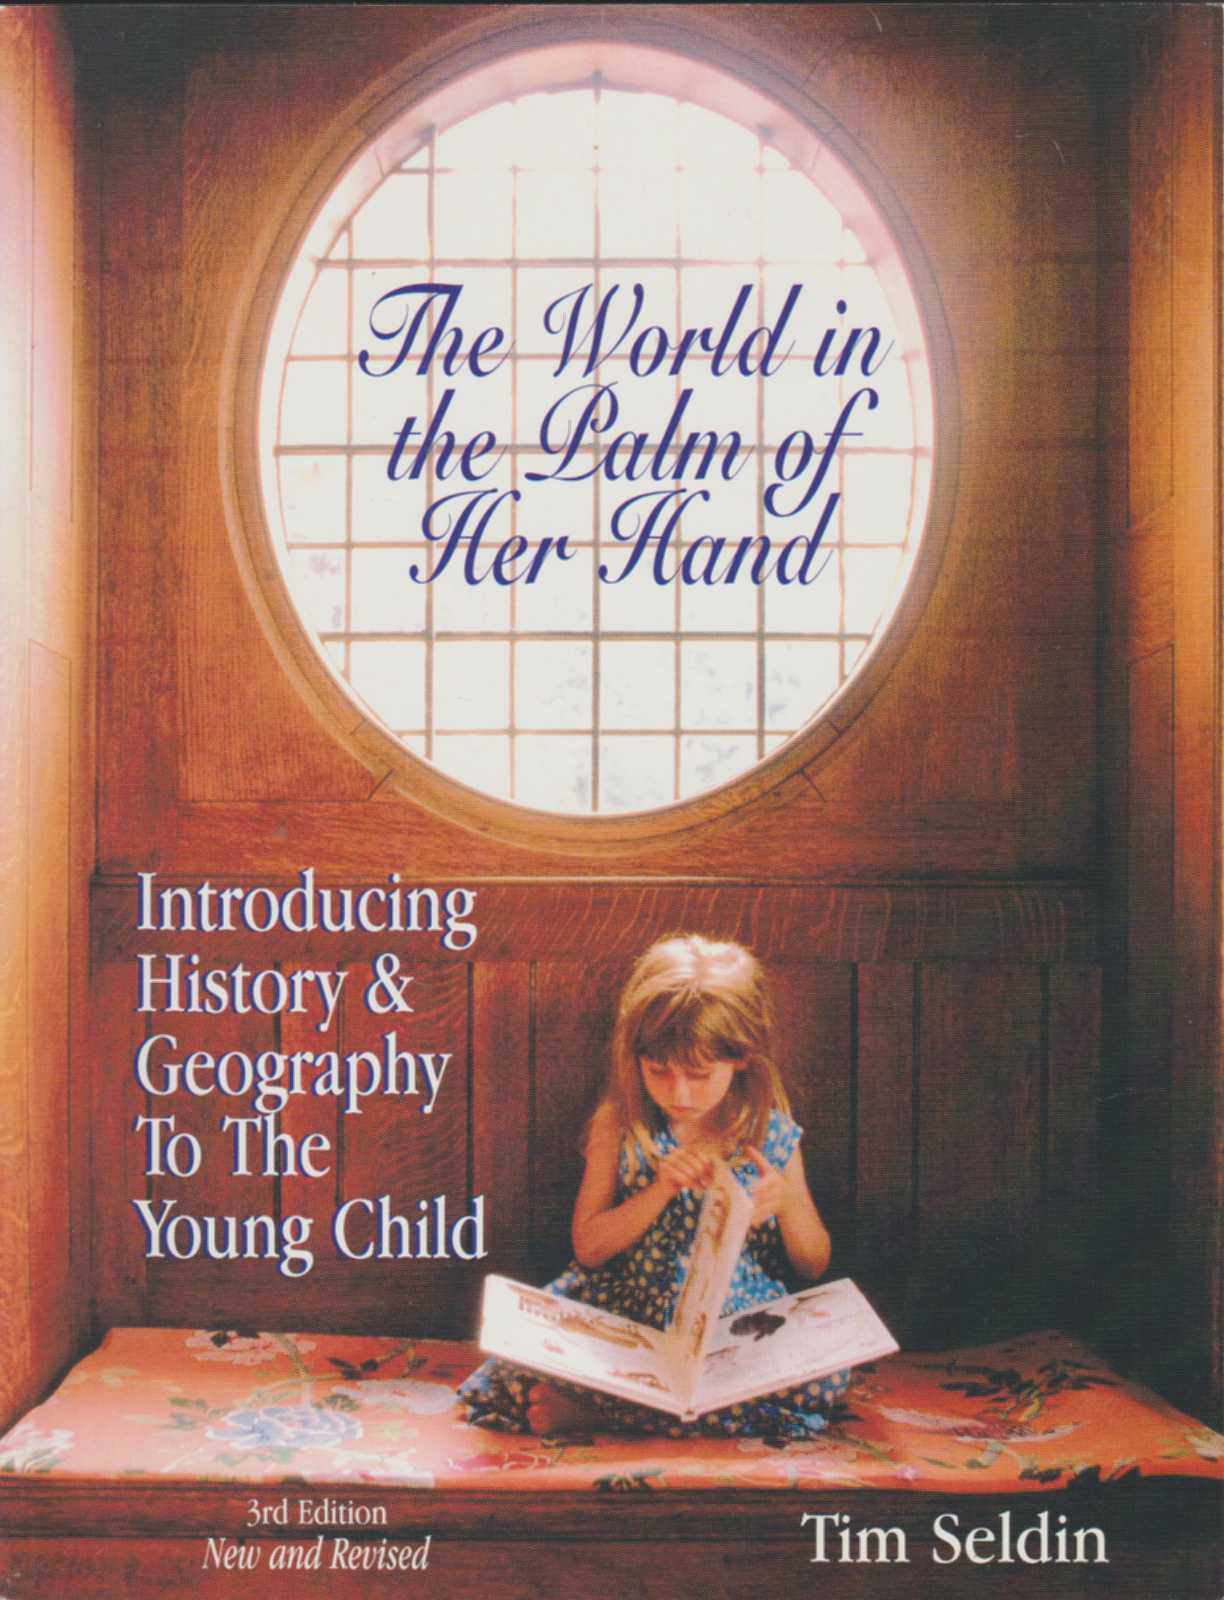 Image for THE WORLD IN THE PALM OF HER HAND: Introducing History and Geography to the Young Child  (3rd Edition)